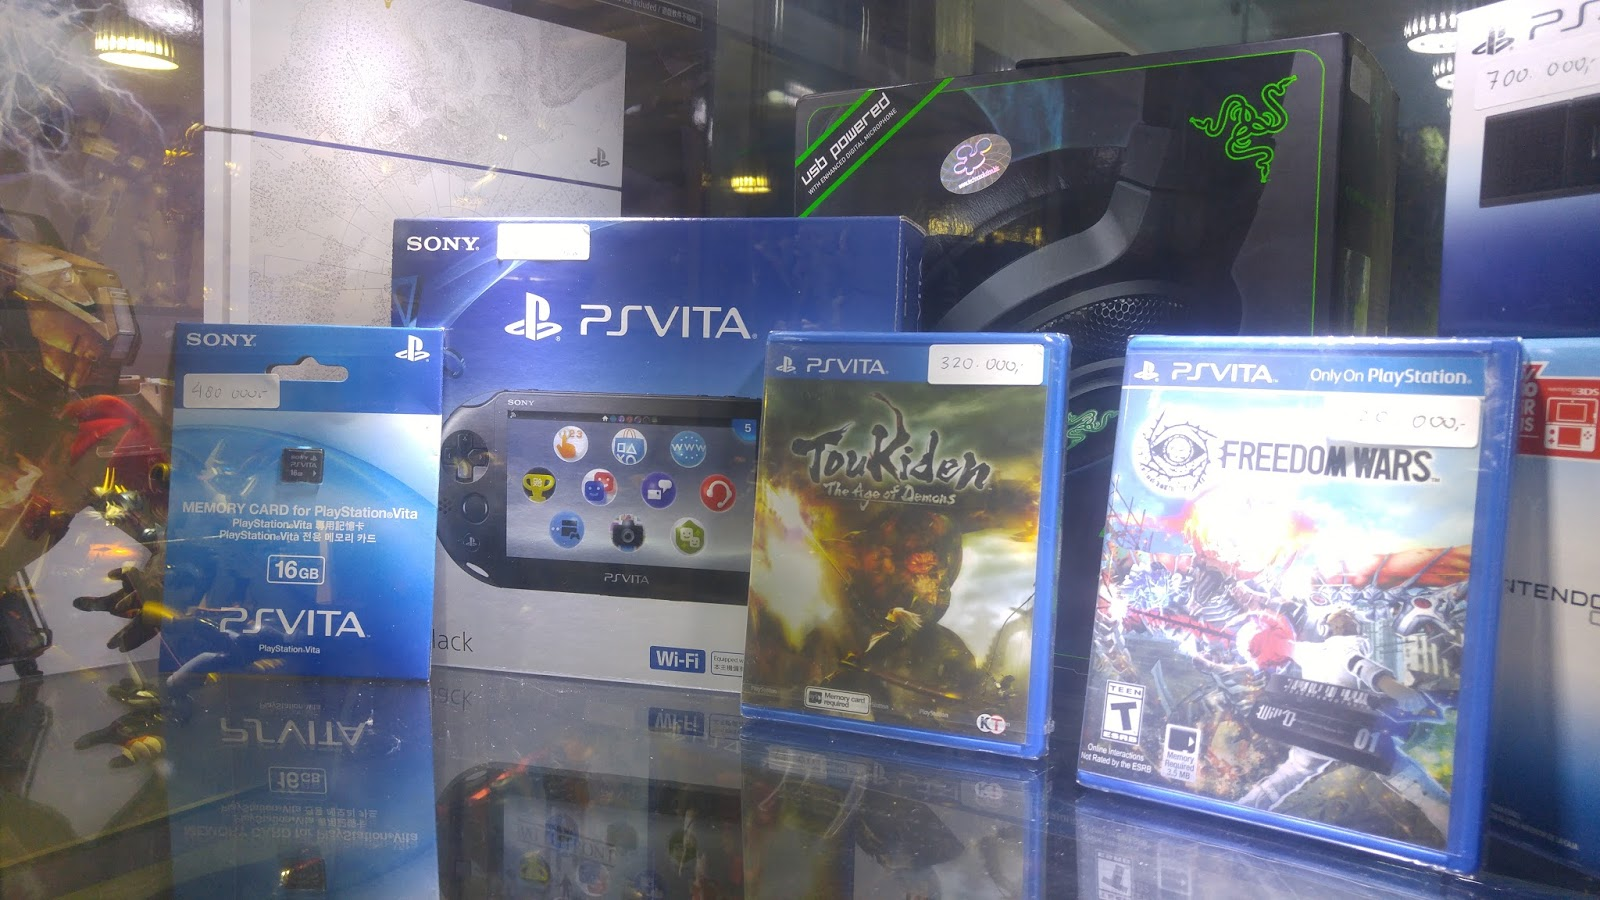 Winter Games Jogja Toko Game Ps2ps3ps4psppsvitaxbox360kinect Kaset Ps4 Bd Batman Arkham Knight Ready Stock Judul Psvita All English Menerima Pesanan Vita